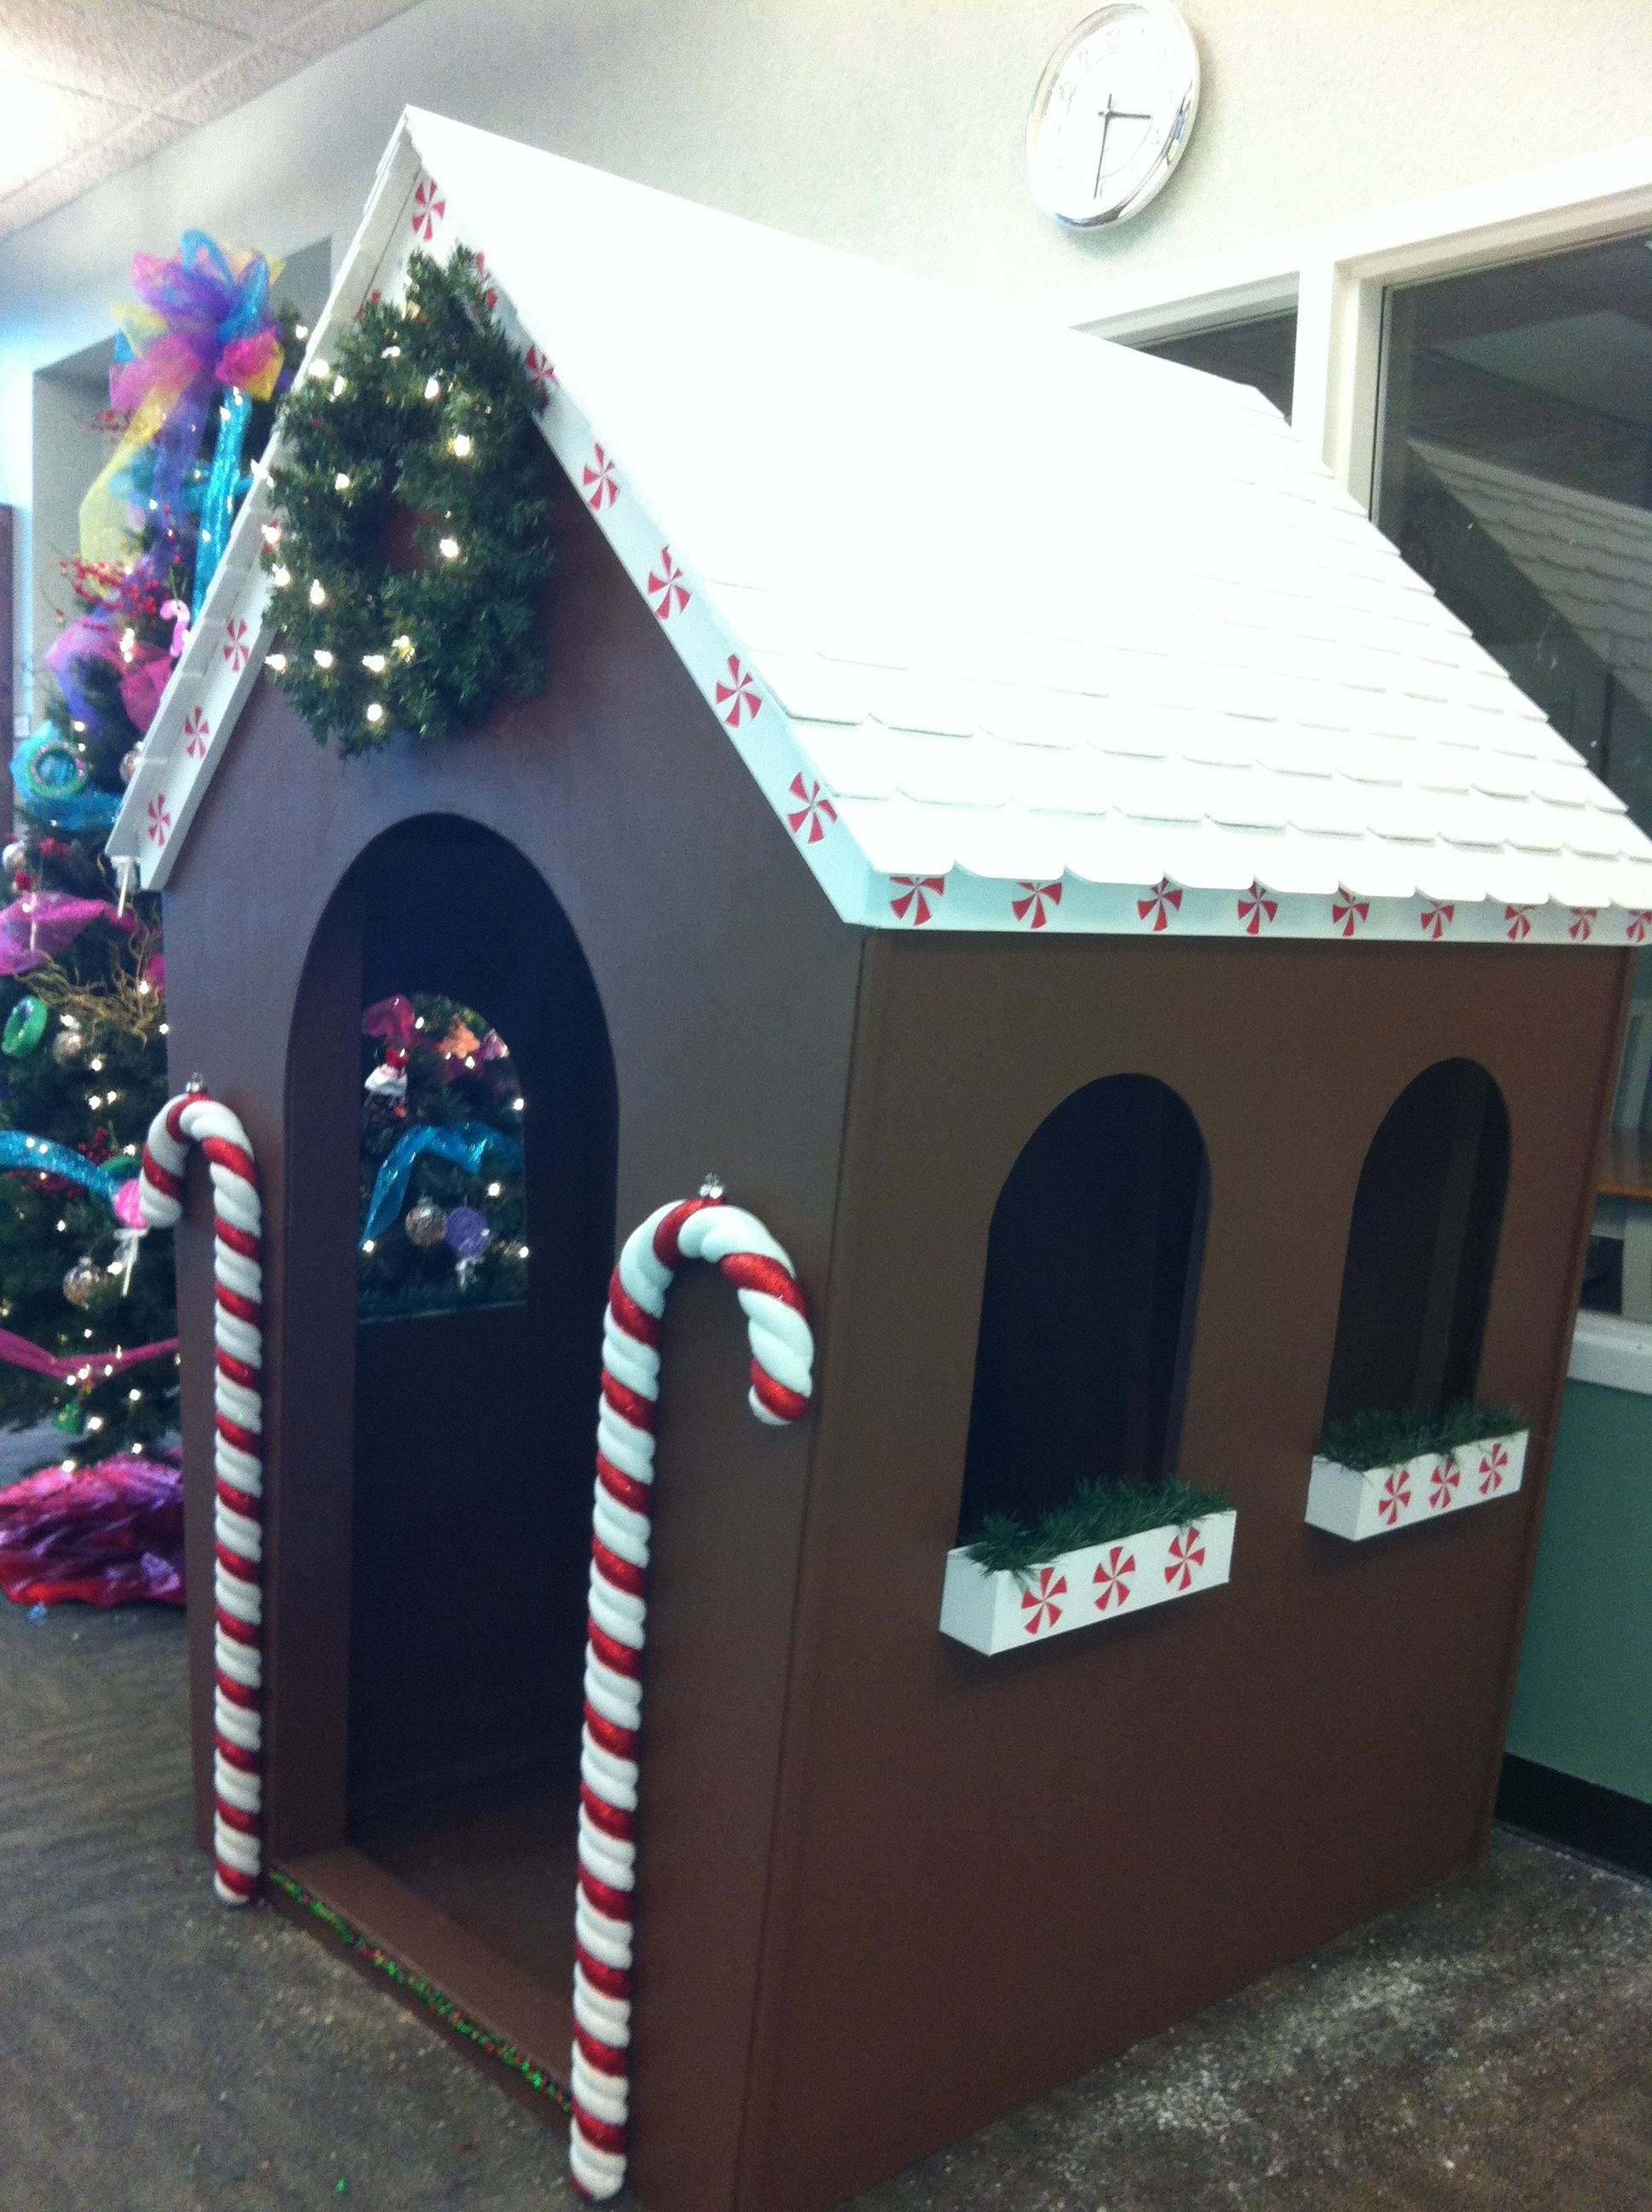 Life Size Gingerbread House I Made For Work Gingerbread House